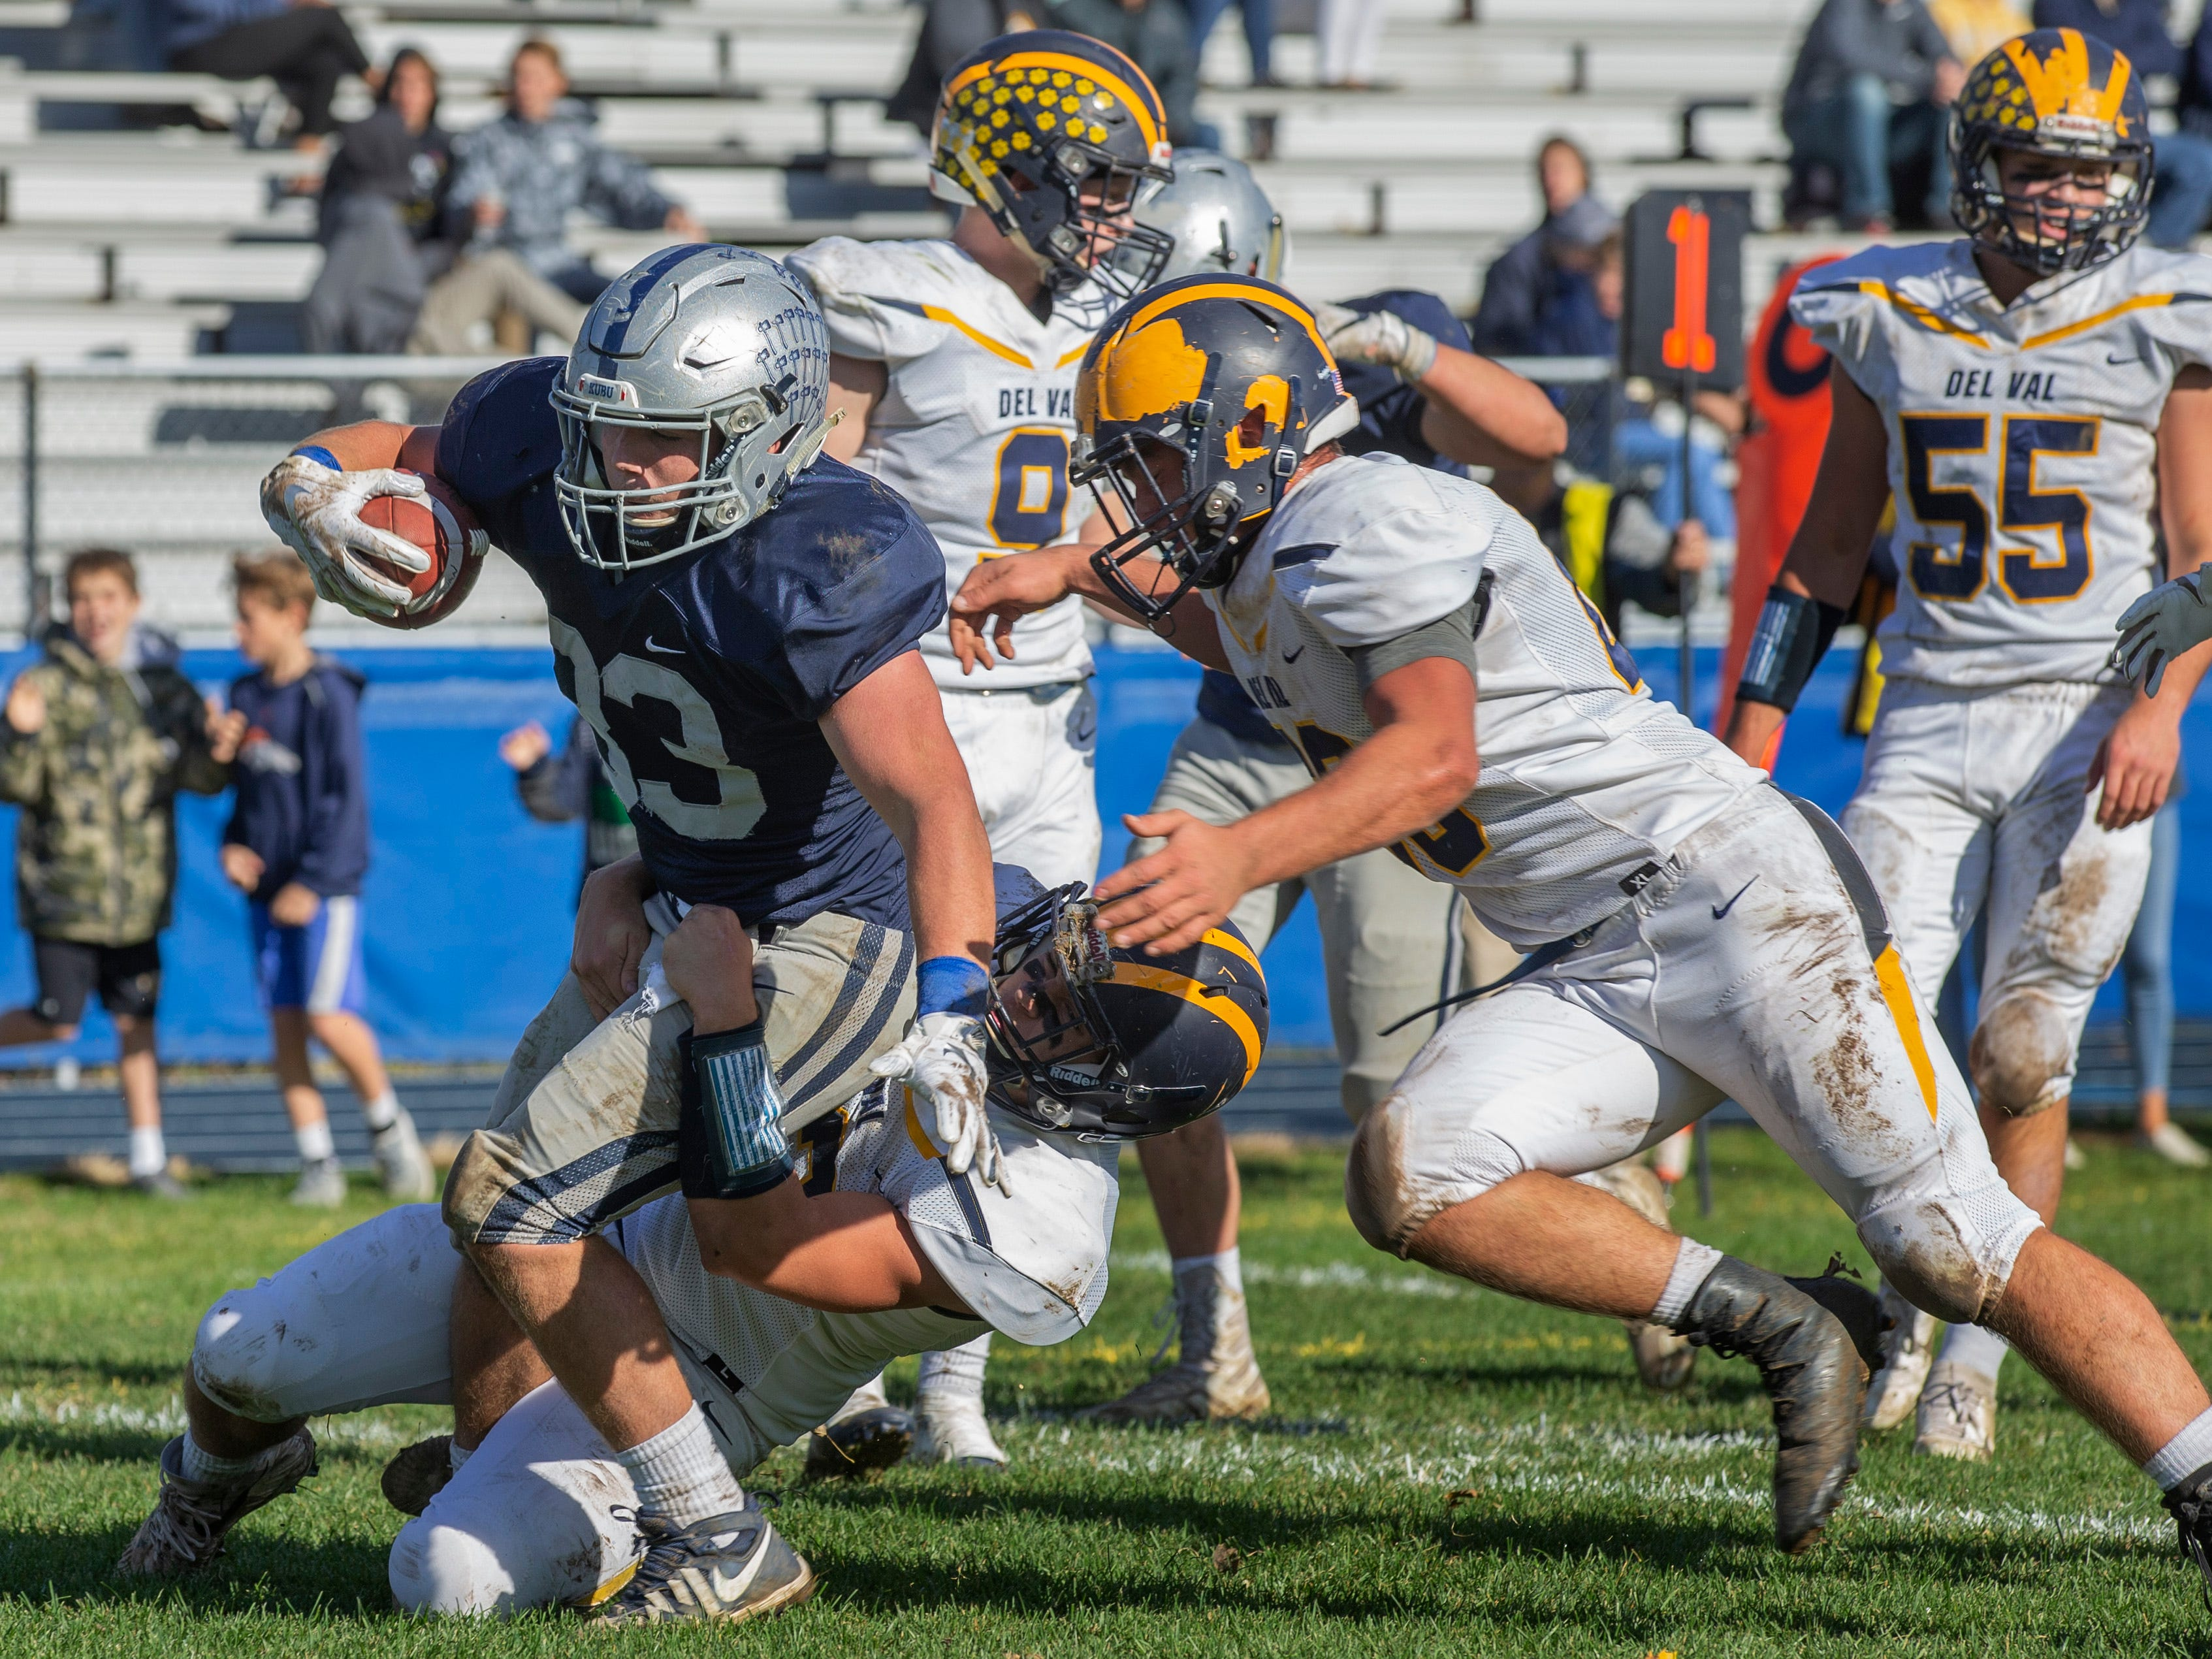 Manasquan's Zane Seal drags Delaware Valley players with him as he scores his team's second touchdown. Manasquan Football buries Delaware Valley in NJSIAA opening round game in Manasquan NJ. On November 3, 2018.